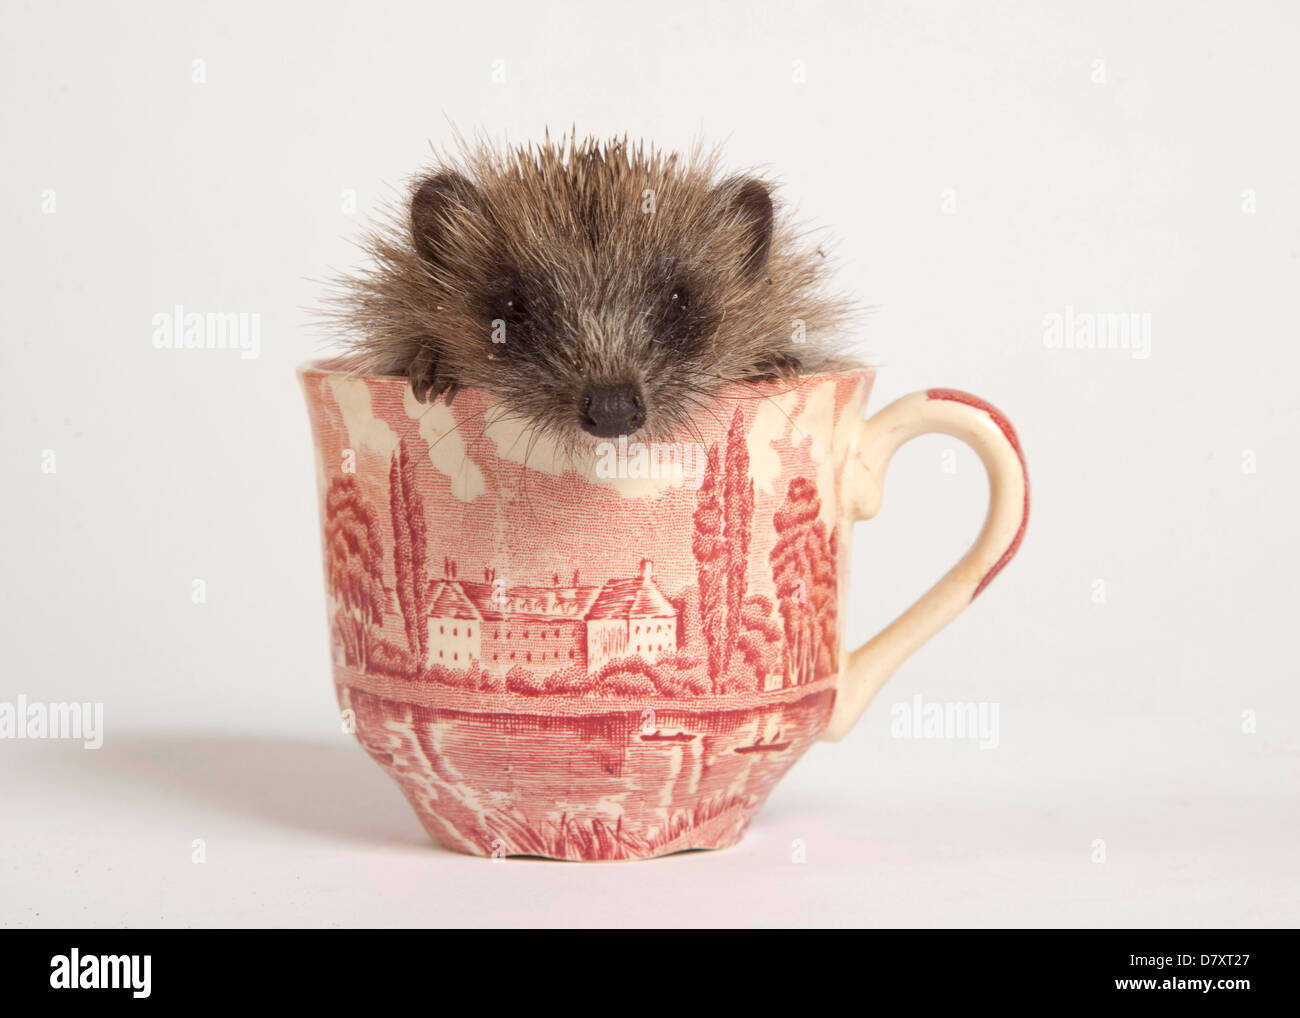 Juvenile Hedgehog in Cup - Stock Image